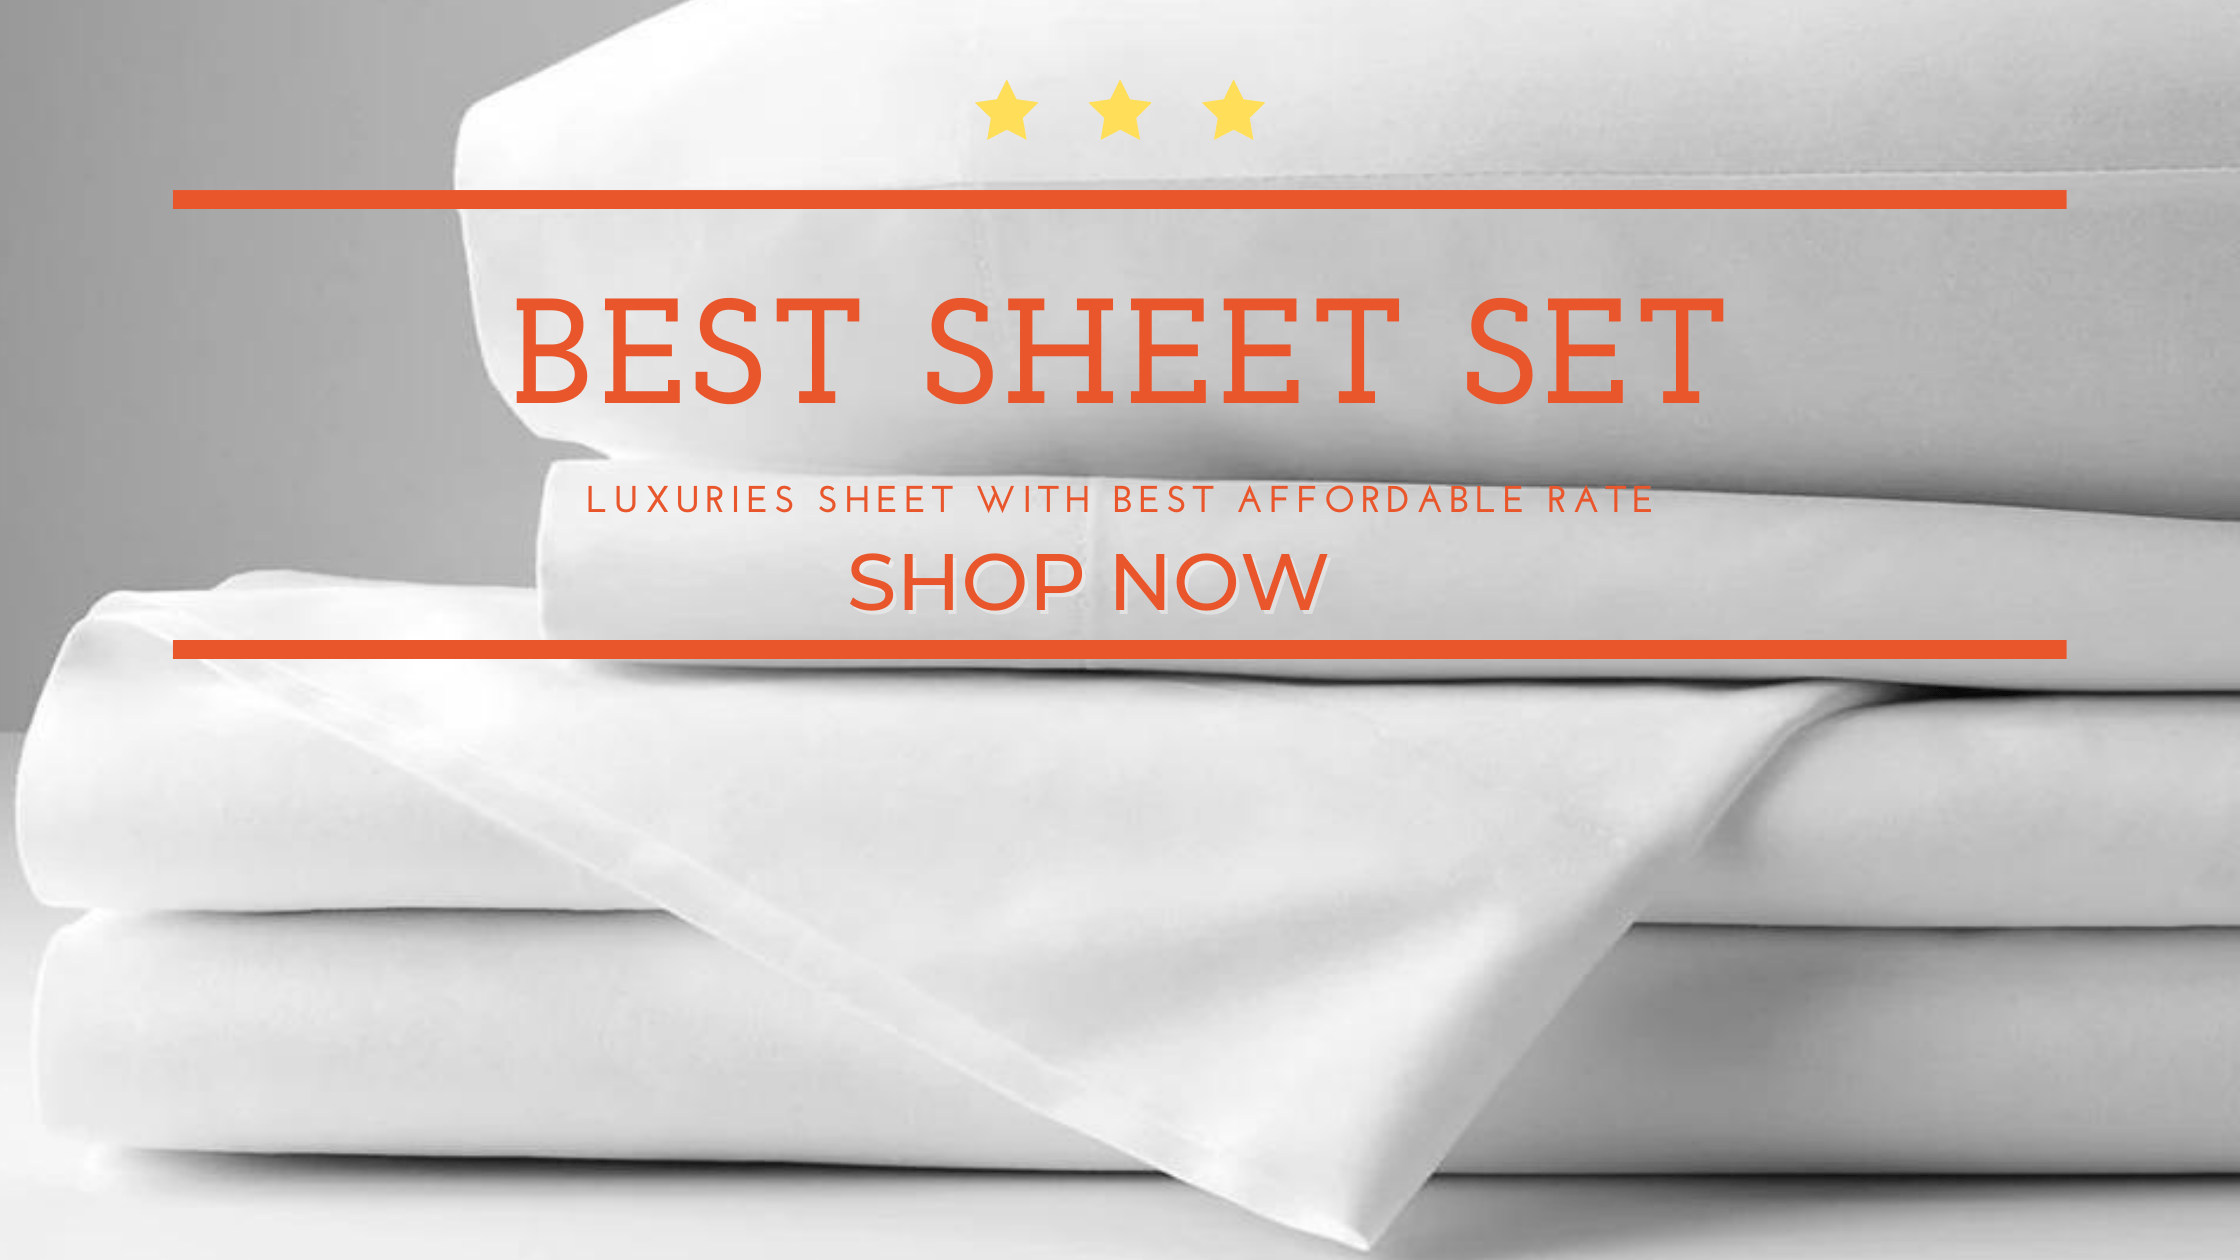 The Best Sheet Sets 2020: Luxuries, Breathable & Affordable